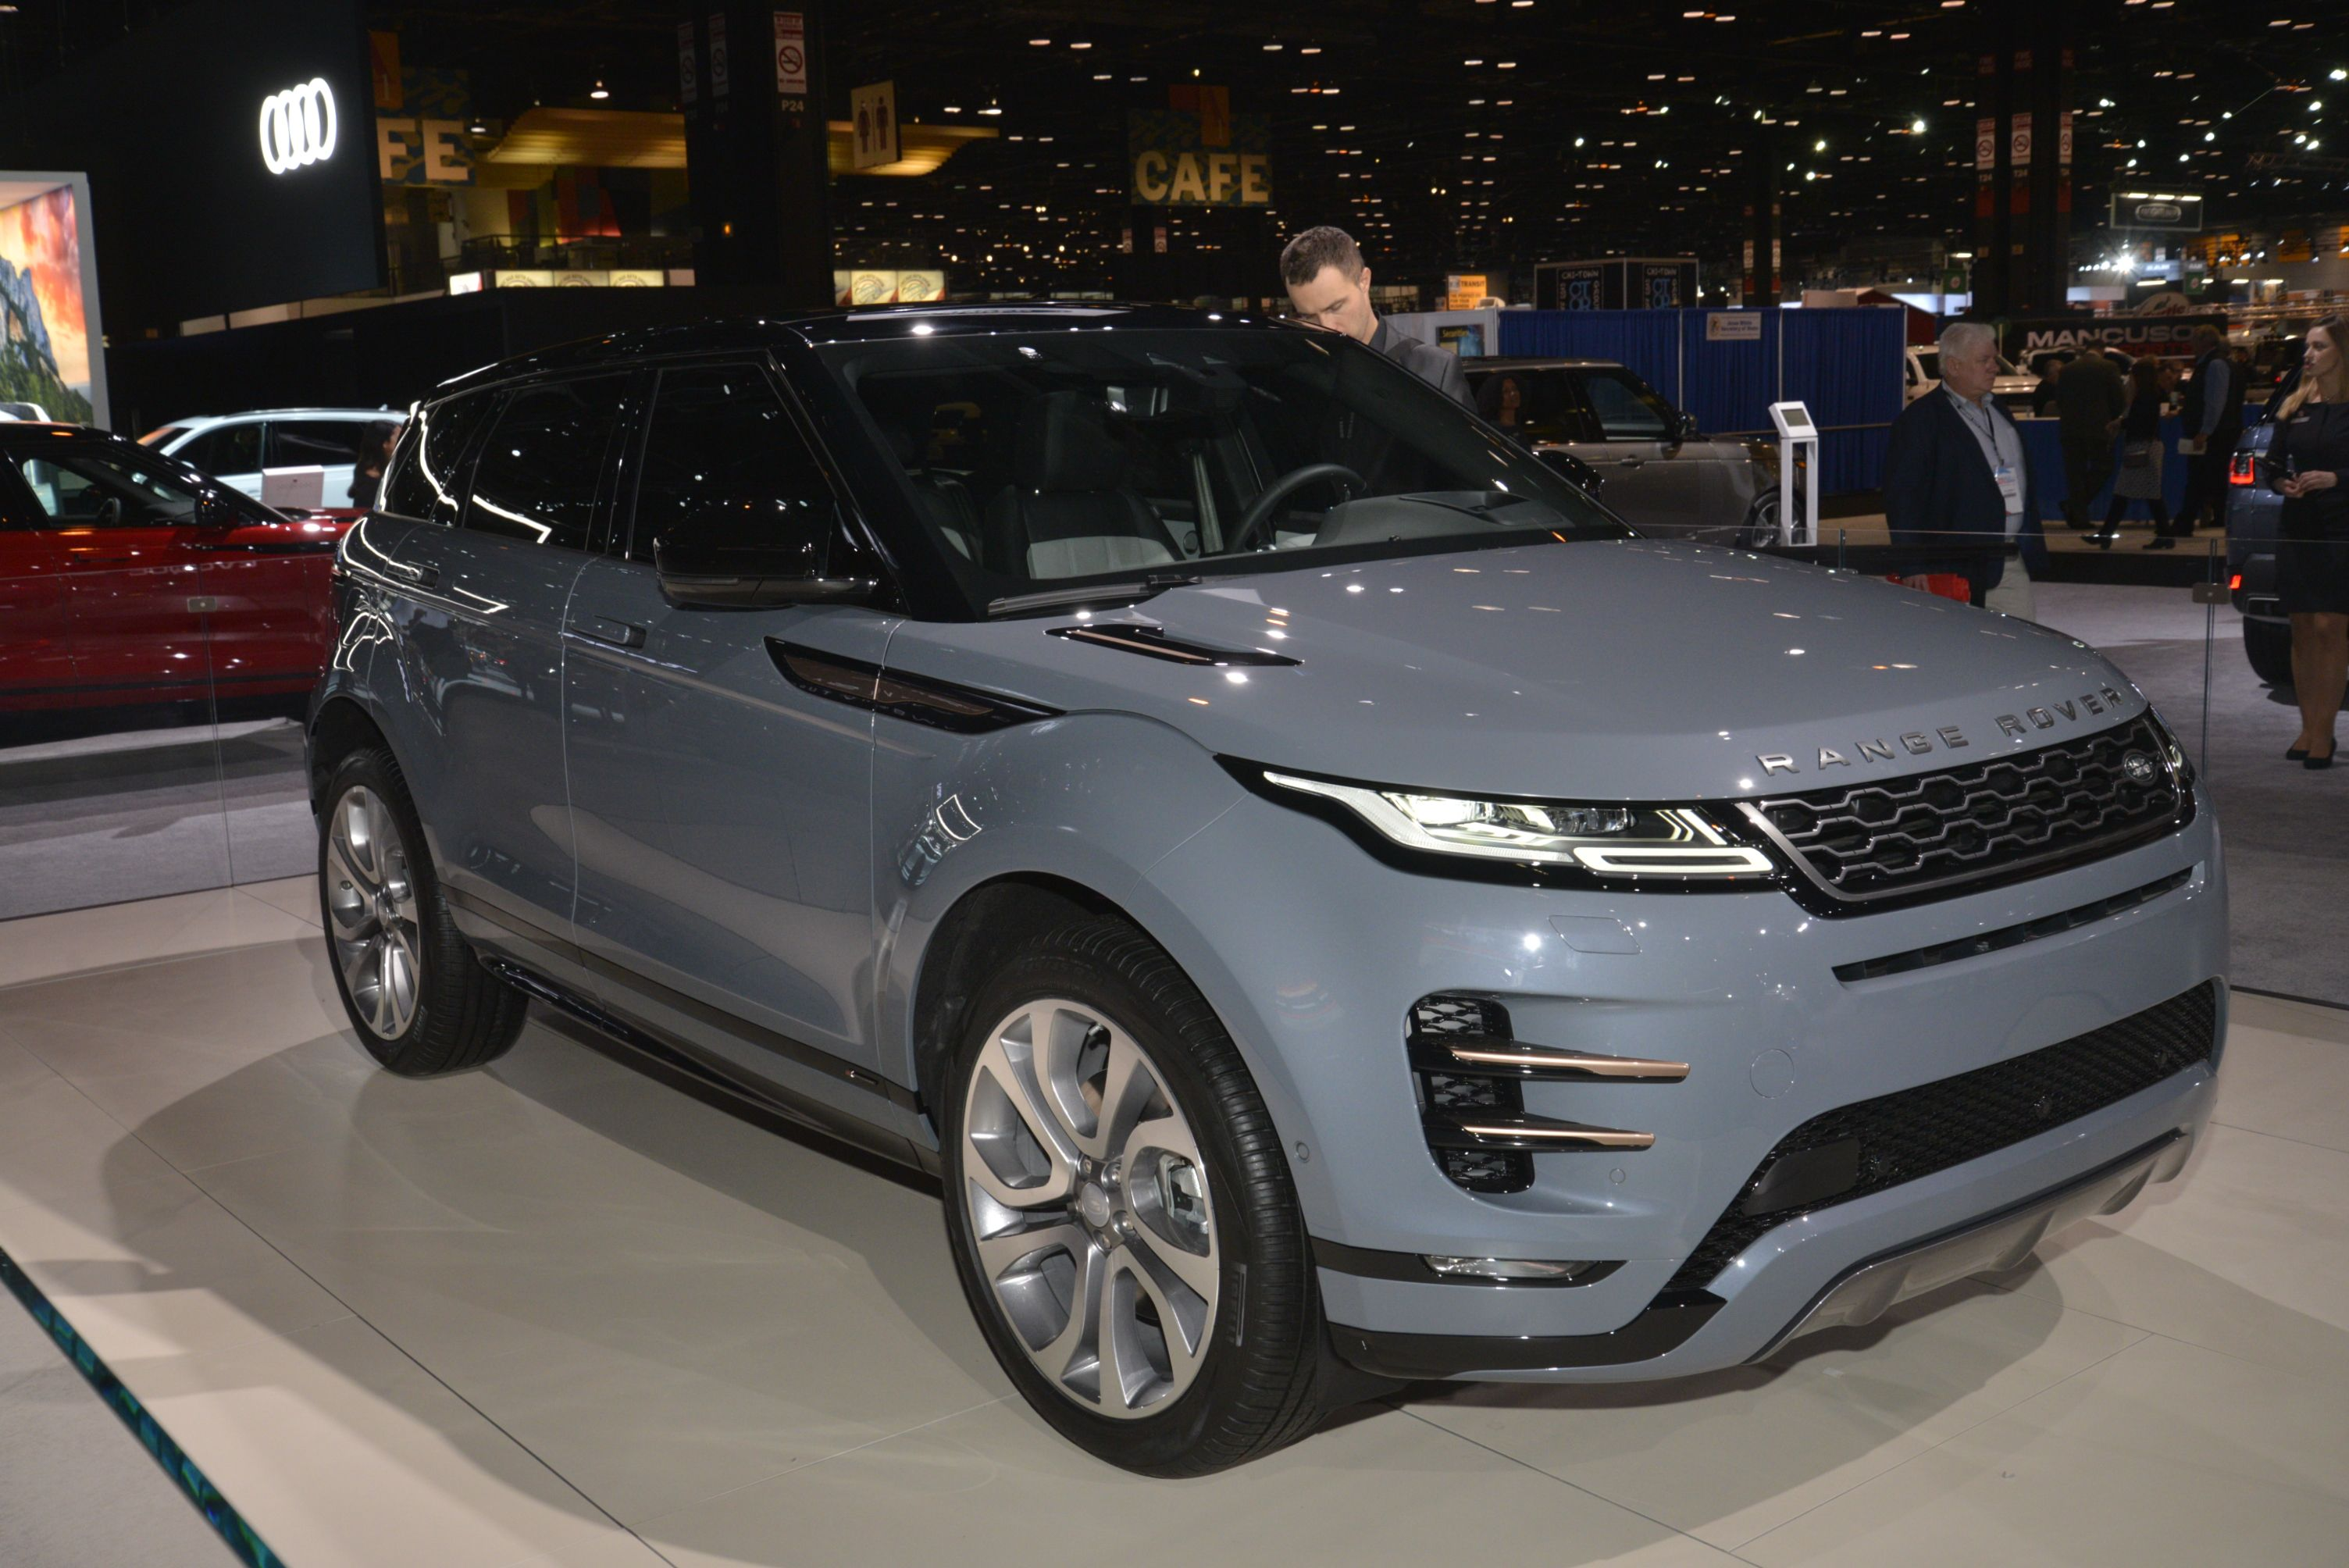 The 2020 Land Rover Range Rover Evoque Adds Extra Luxury And Mild-Hybrid Power To The Off-Roader Segment #dreamcars